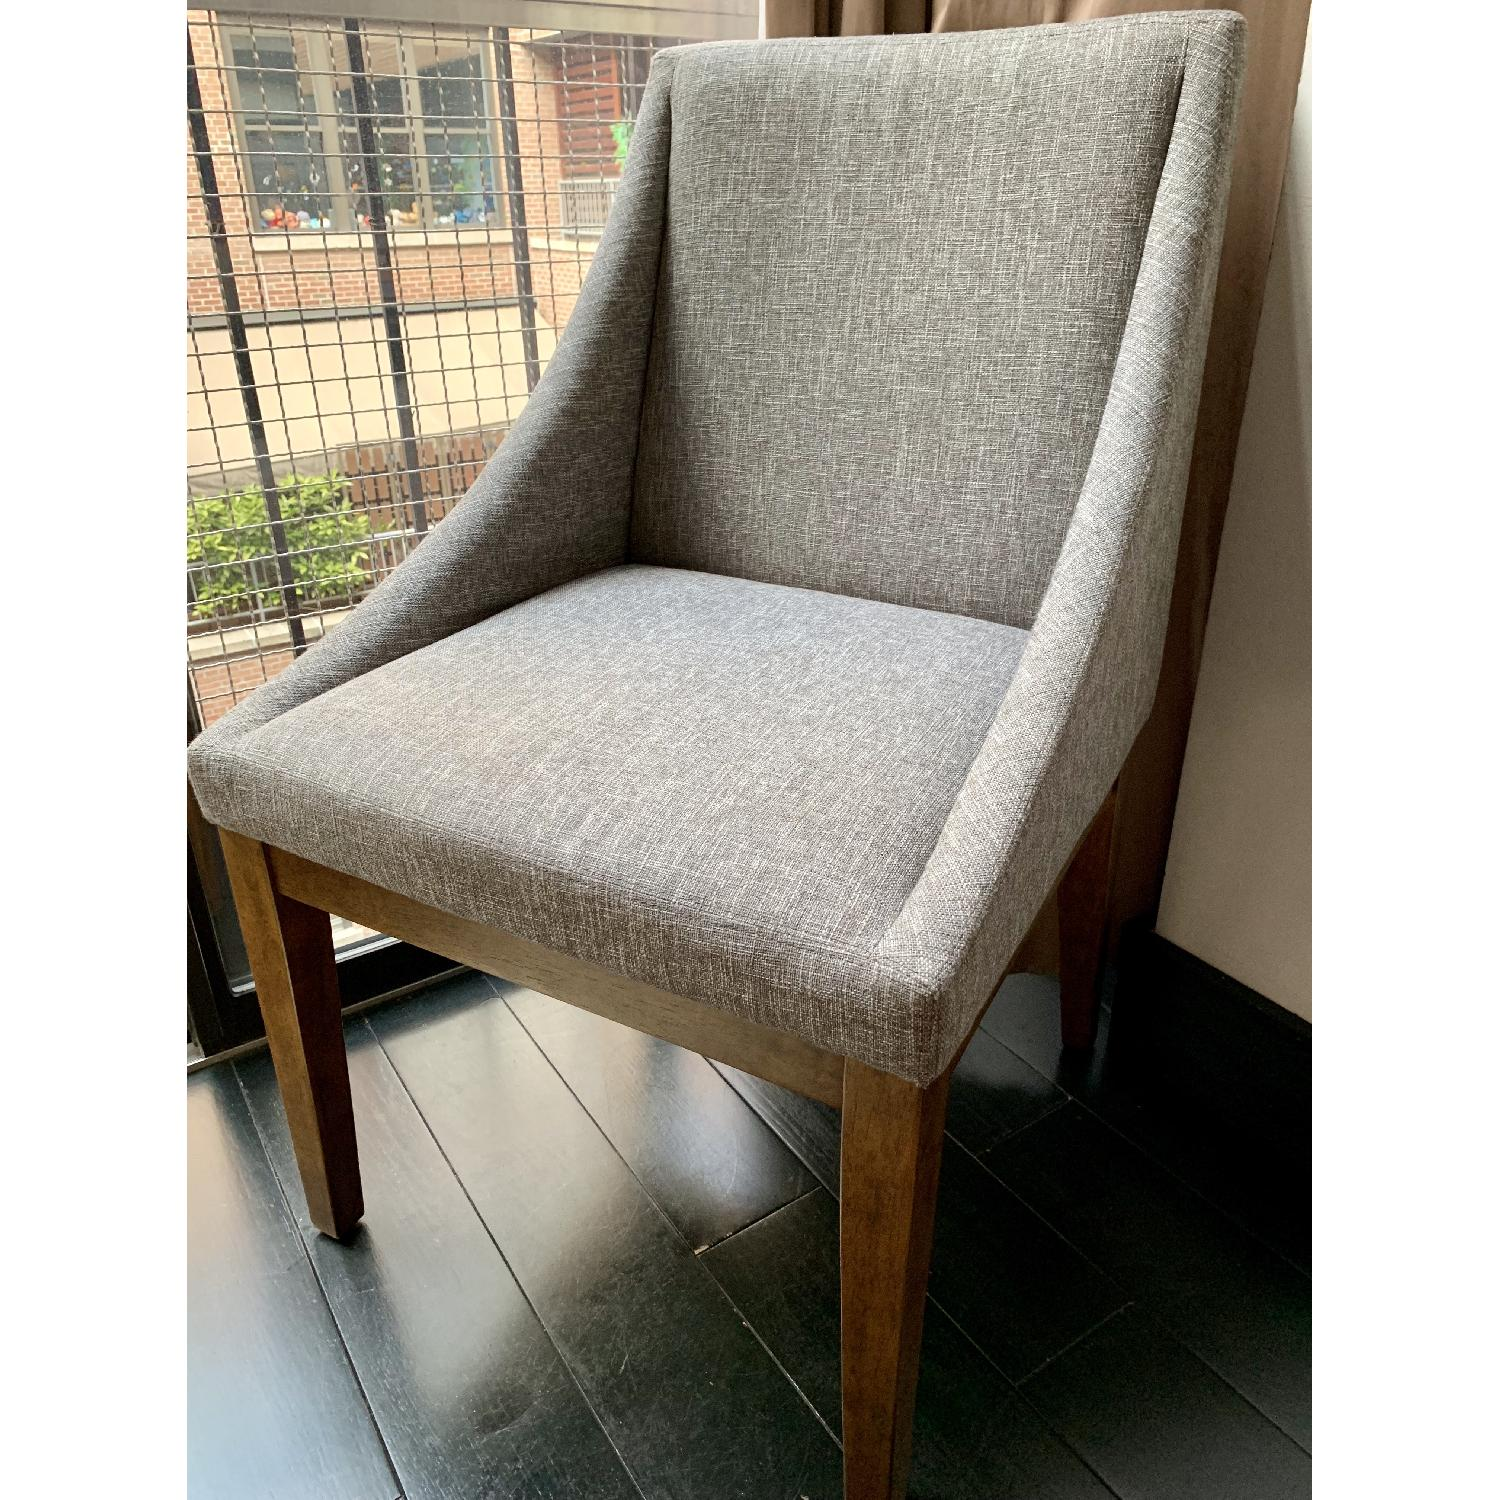 West Elm Upholstered Dining Chairs - image-2